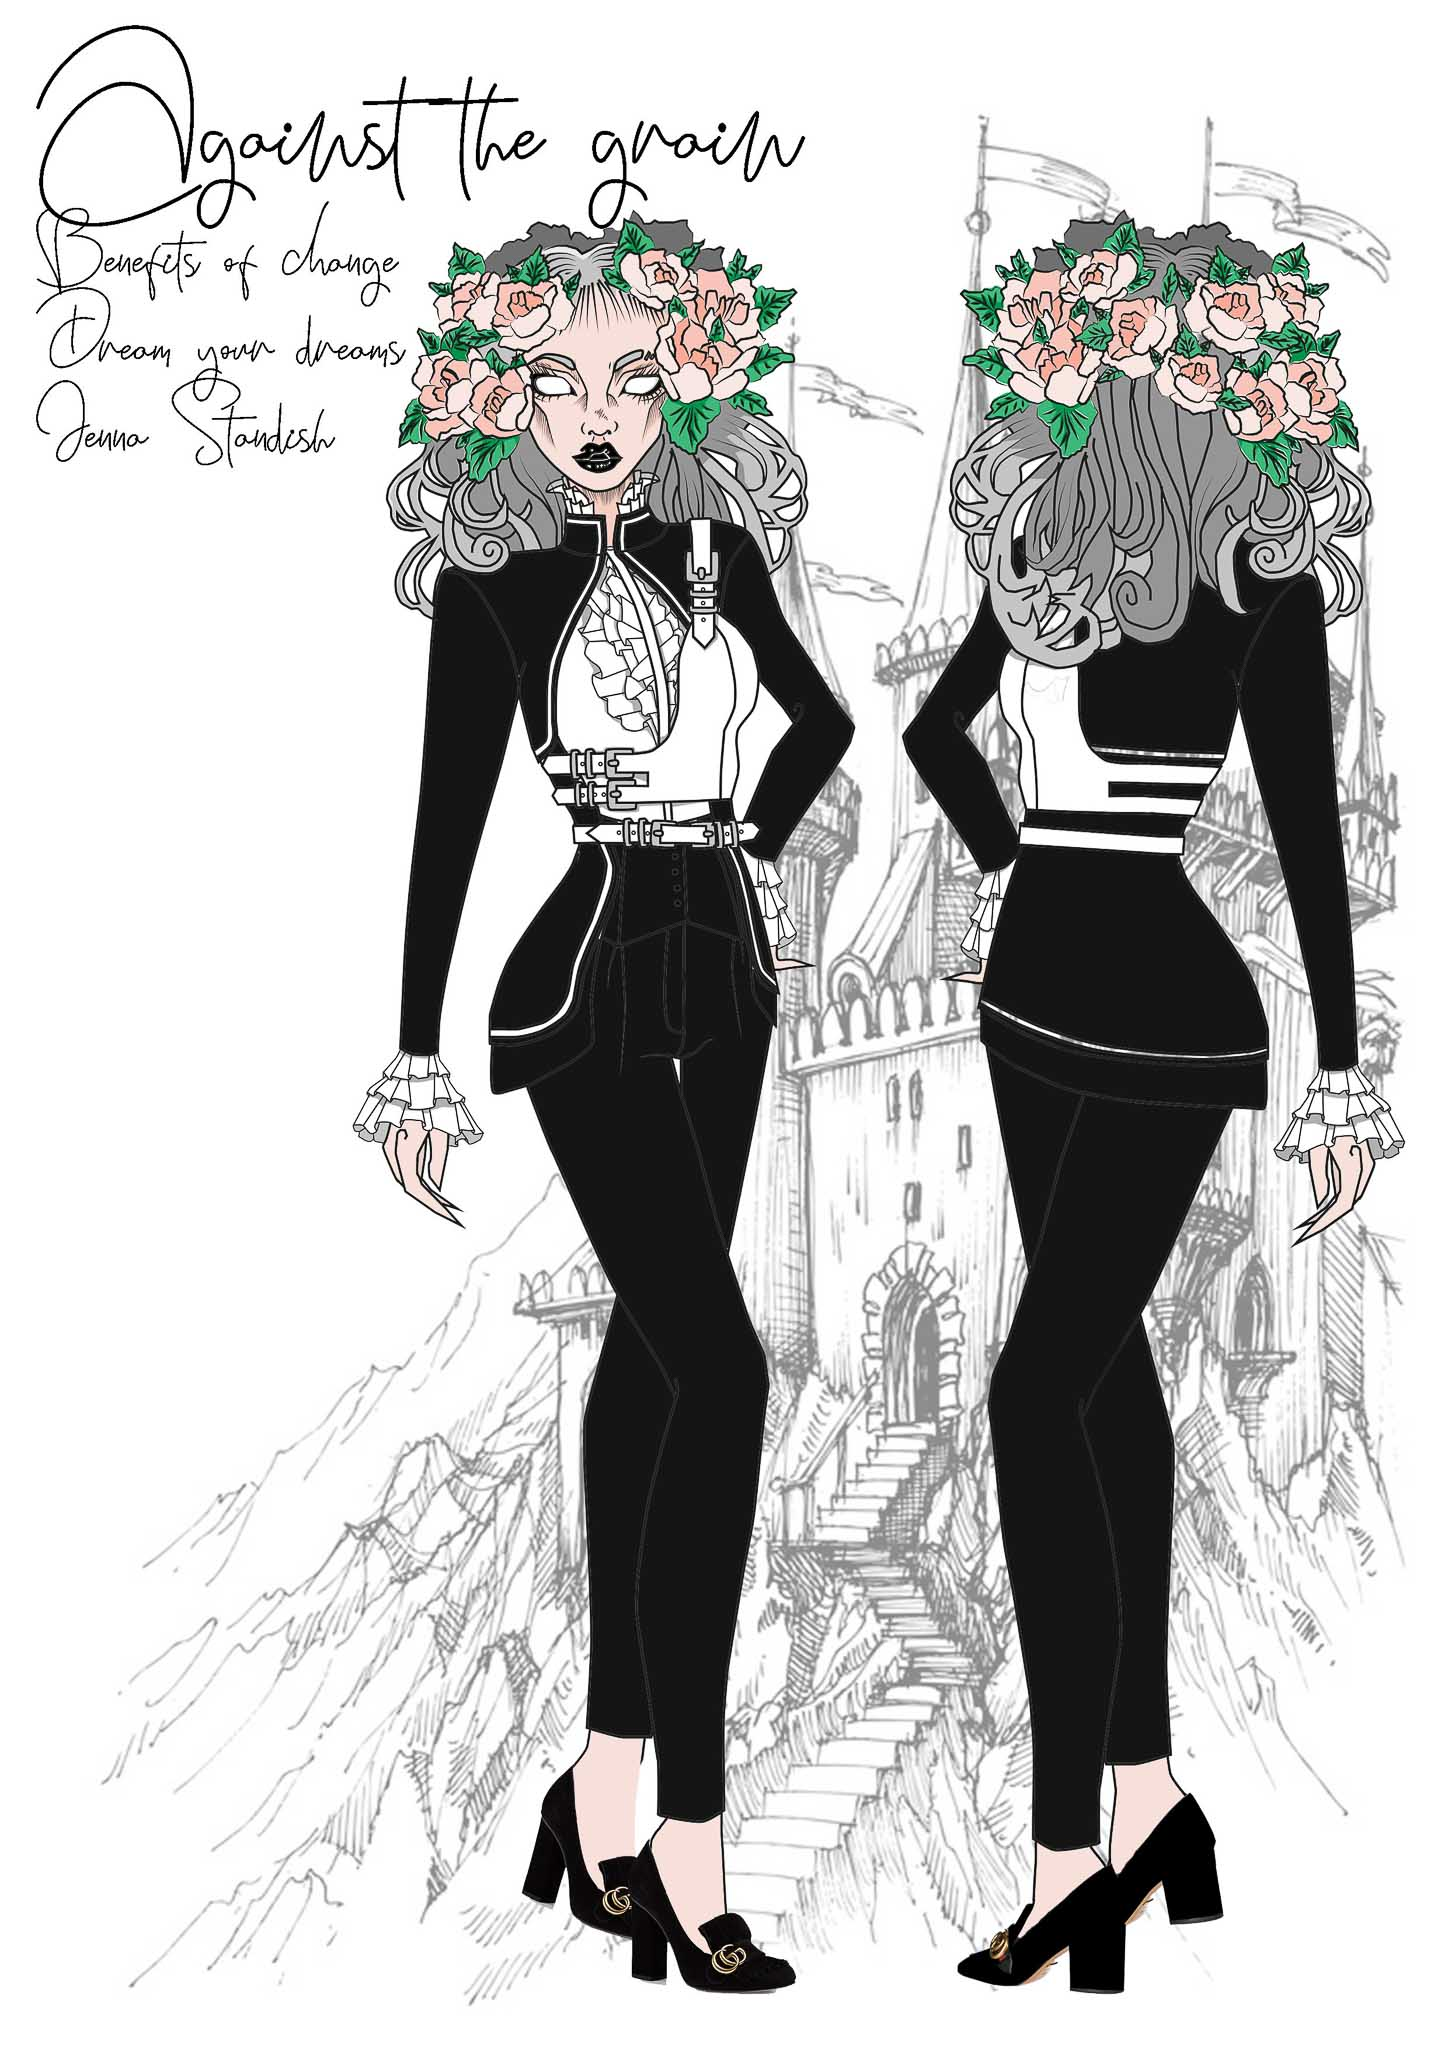 Against the Grain: Jenna Standish, South Africa, Student, Elizabeth Galloway Academy of Fashion Design (Dream your Dreams)